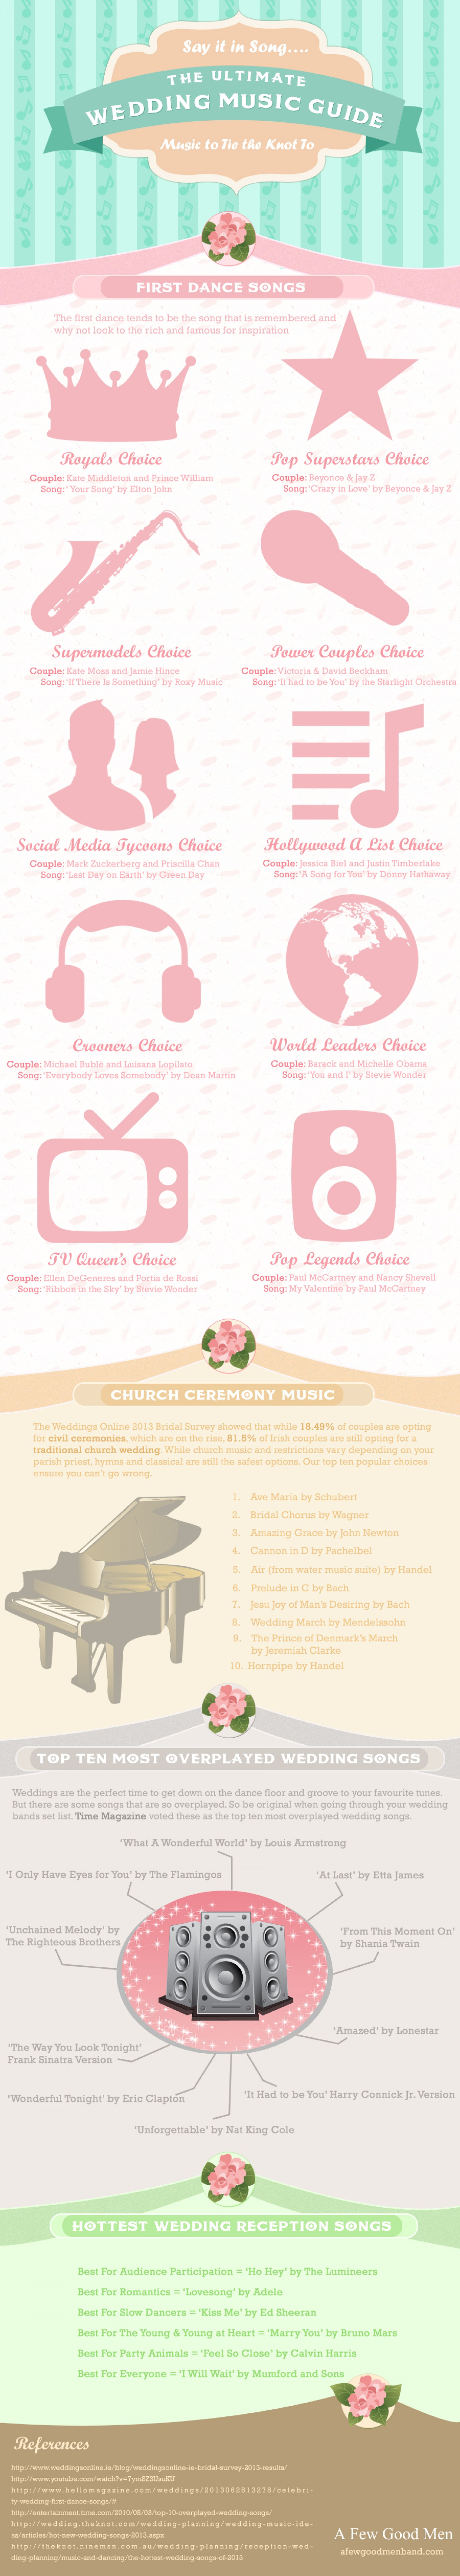 The Ultimate Wedding Music Guide